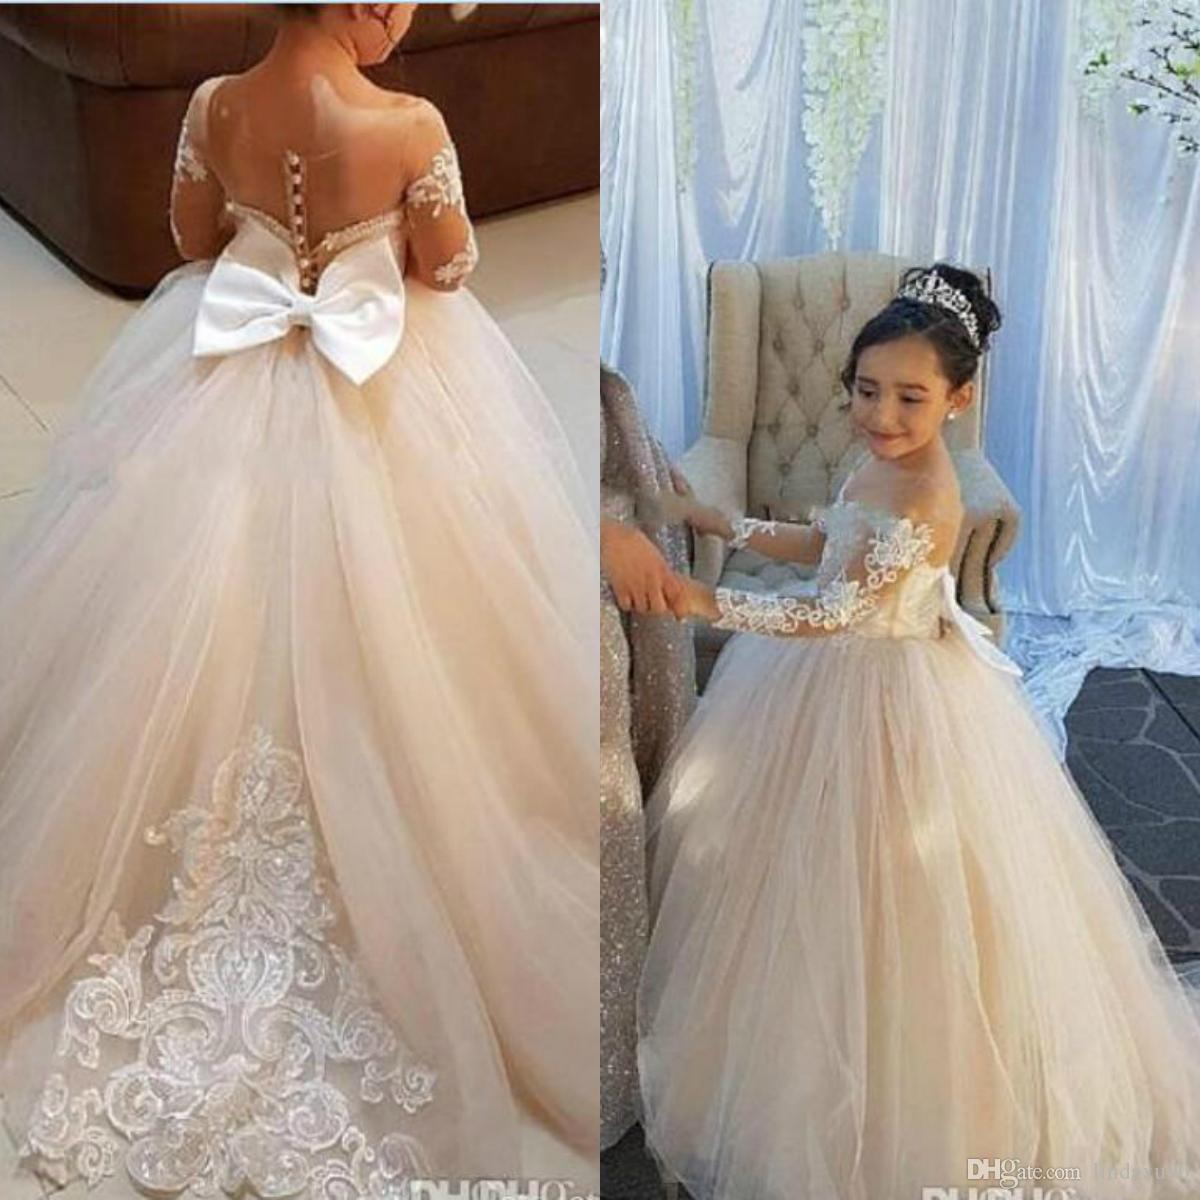 2019 Ball Gown Flower Girls Dresses Lace Appliqued Long Sleeve Pageant  Dresses For Girls Big Bow Birthday Wedding Formal Wear Ivory Colored Flower  Girl ... 8c8a07e16b95